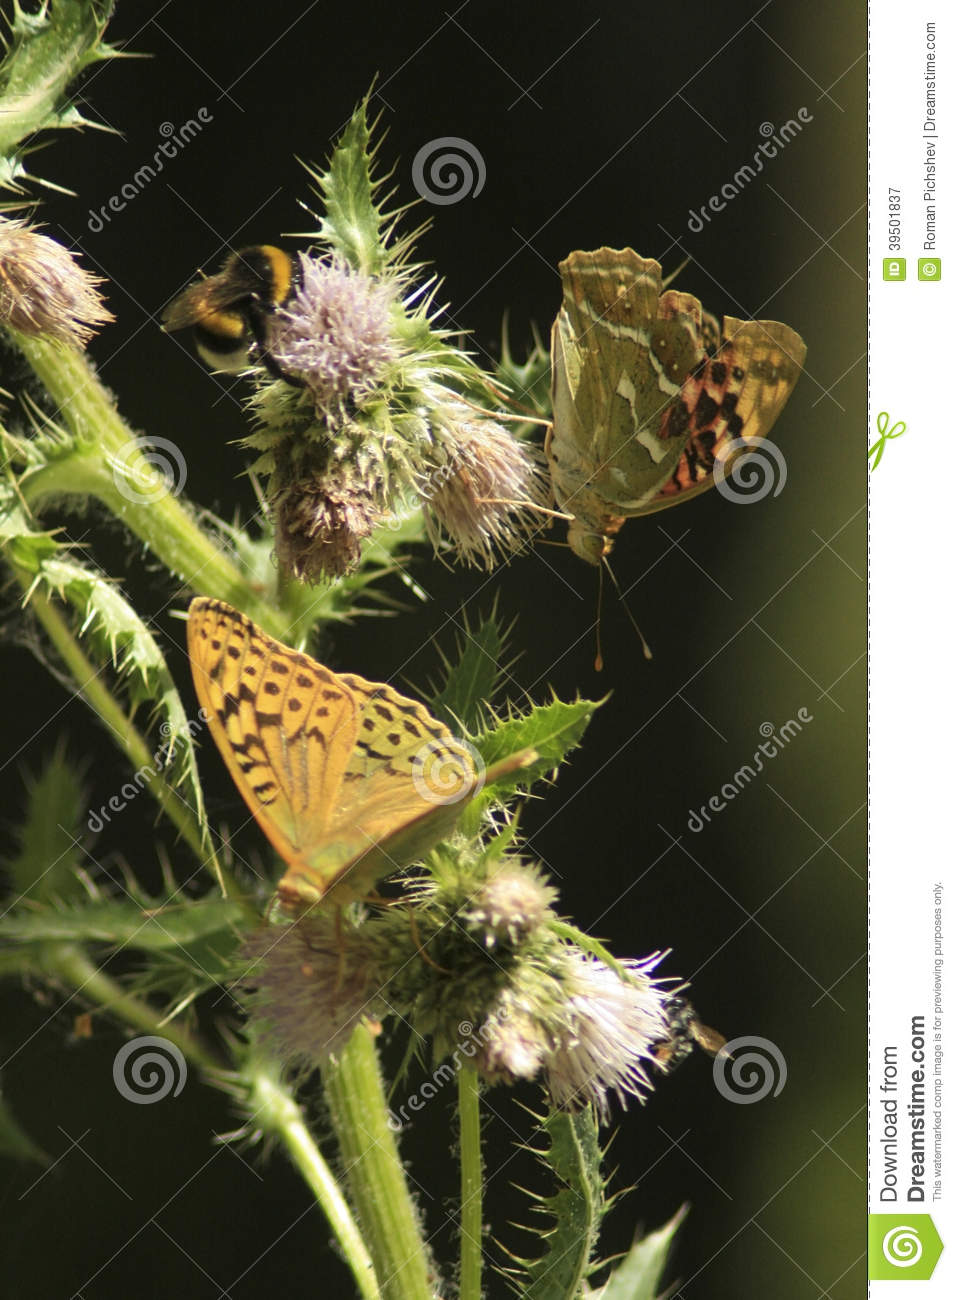 Butterflies on a prickle